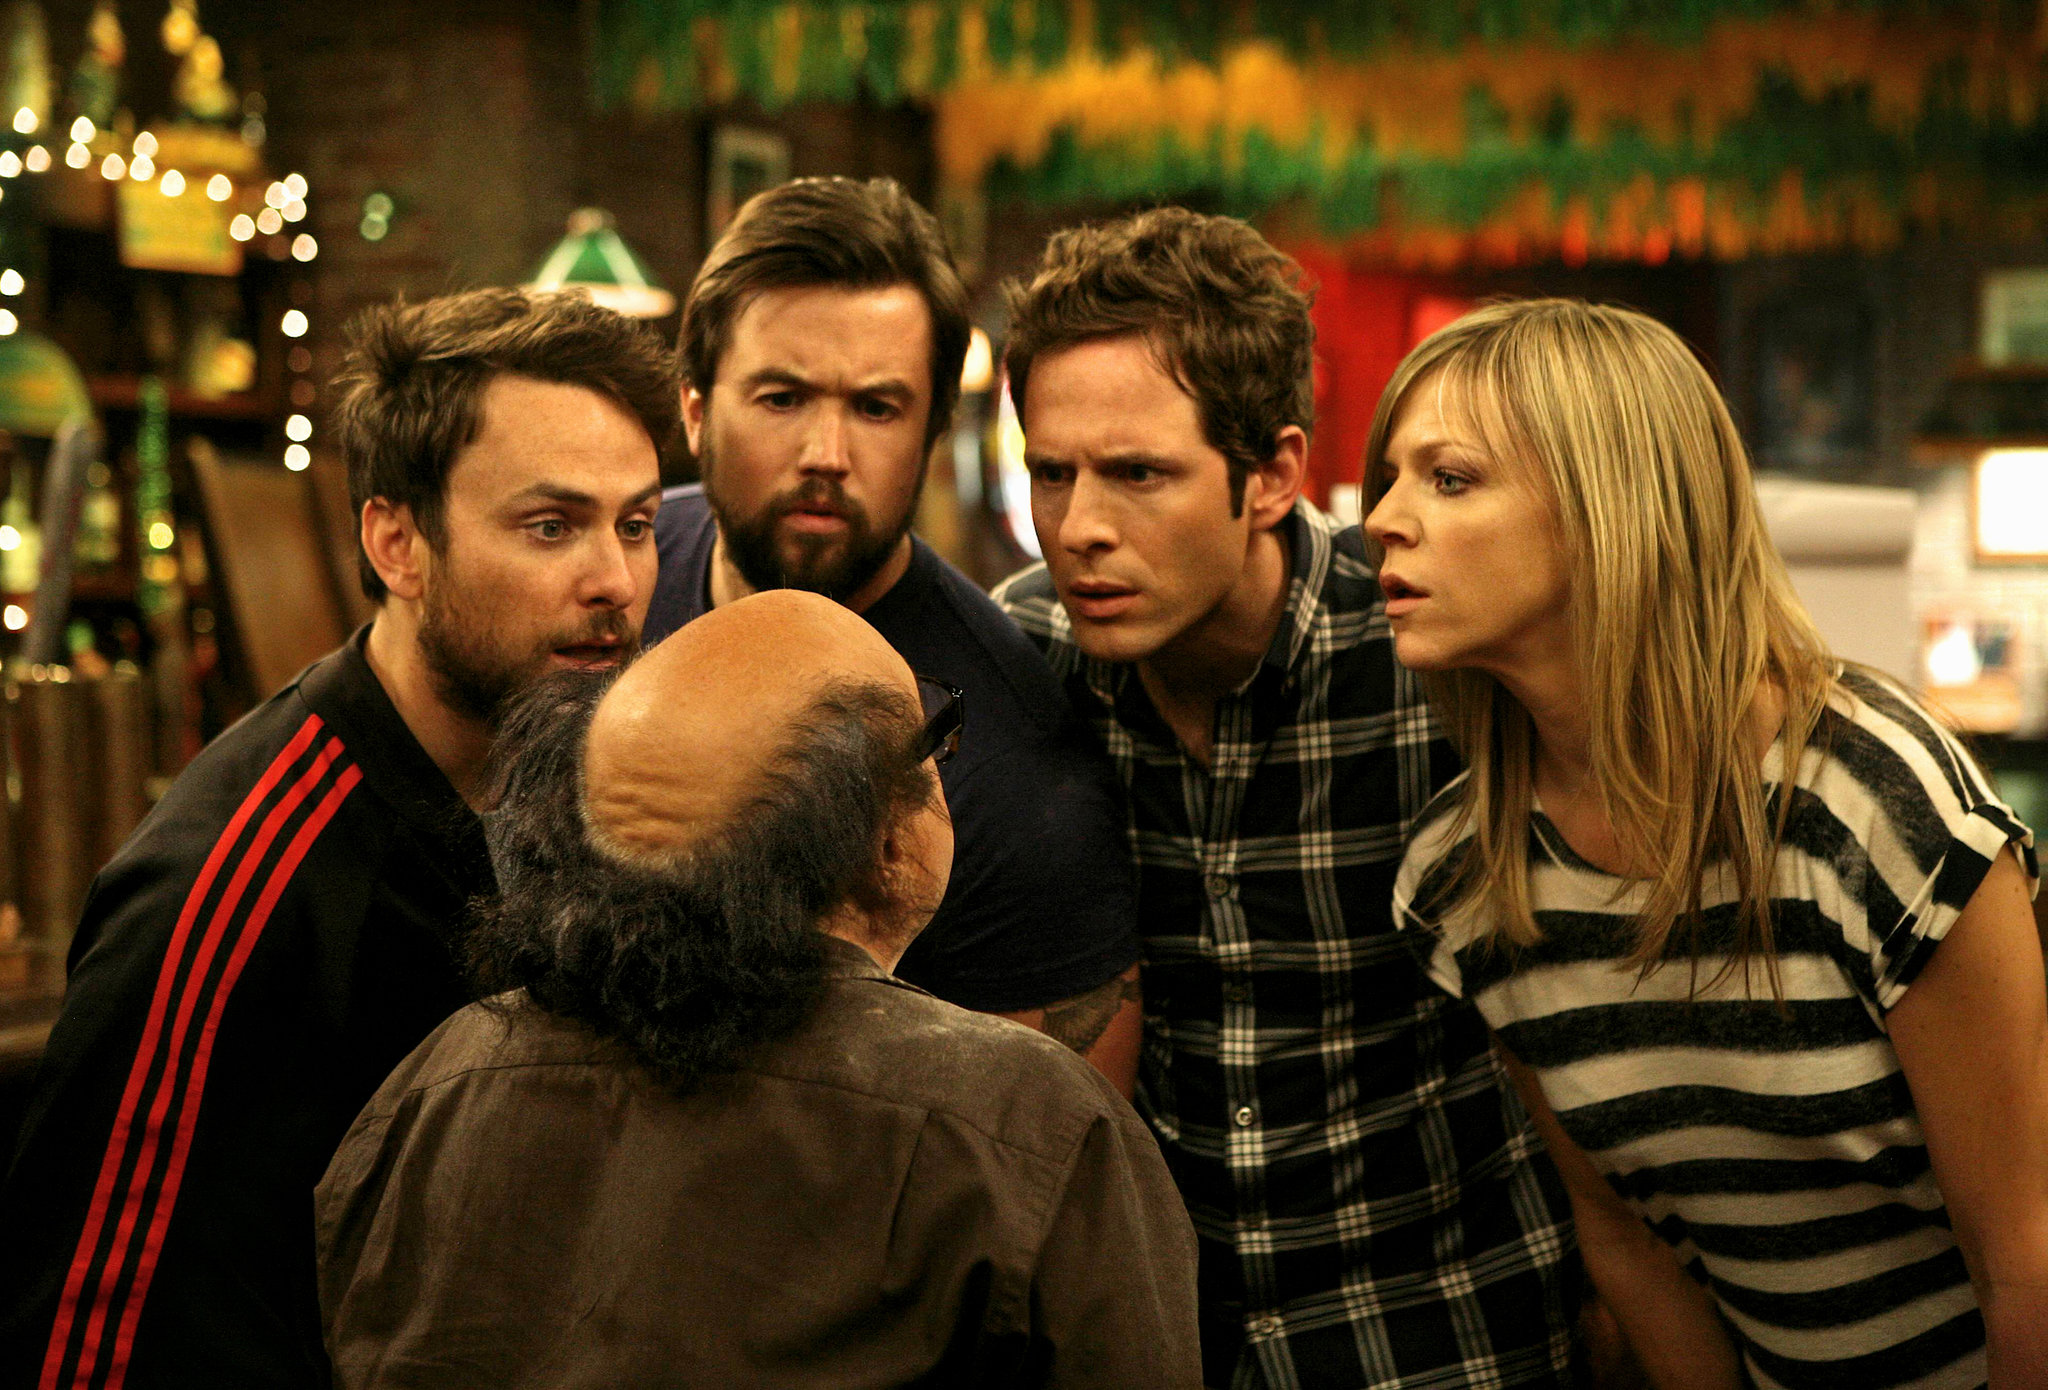 'It's Always Sunny in Philadelphia' gang will be back for record-breaking 15th season